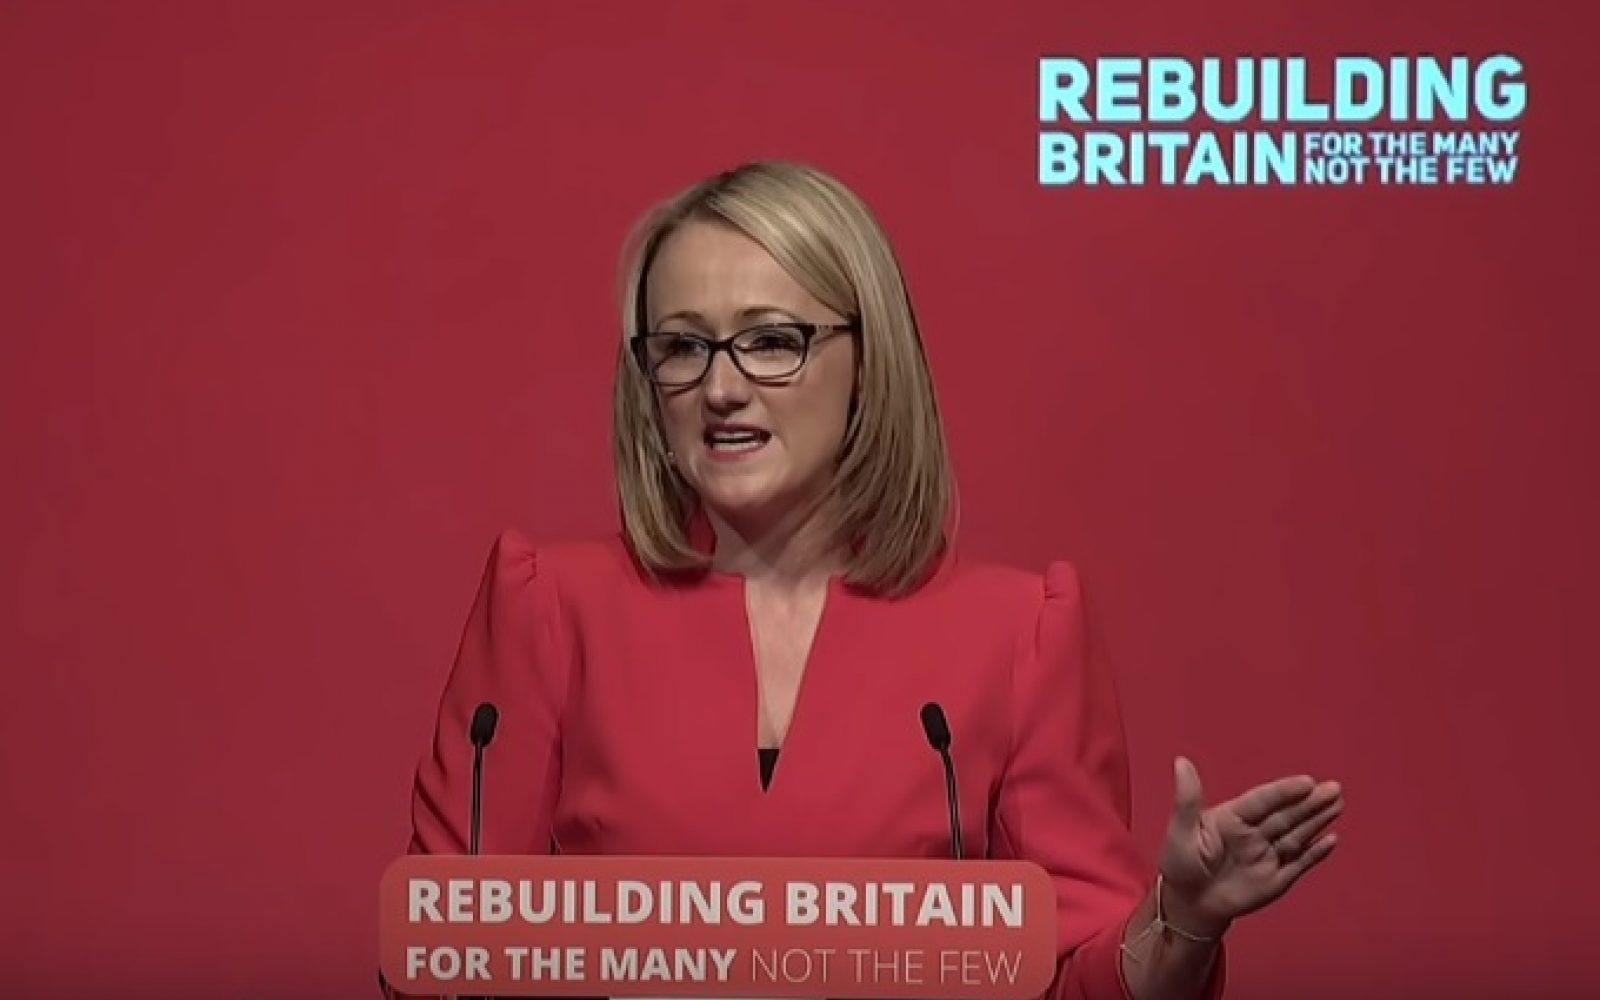 Rebecca Long Bailey at last year's Labour party conference. Image: Labour.